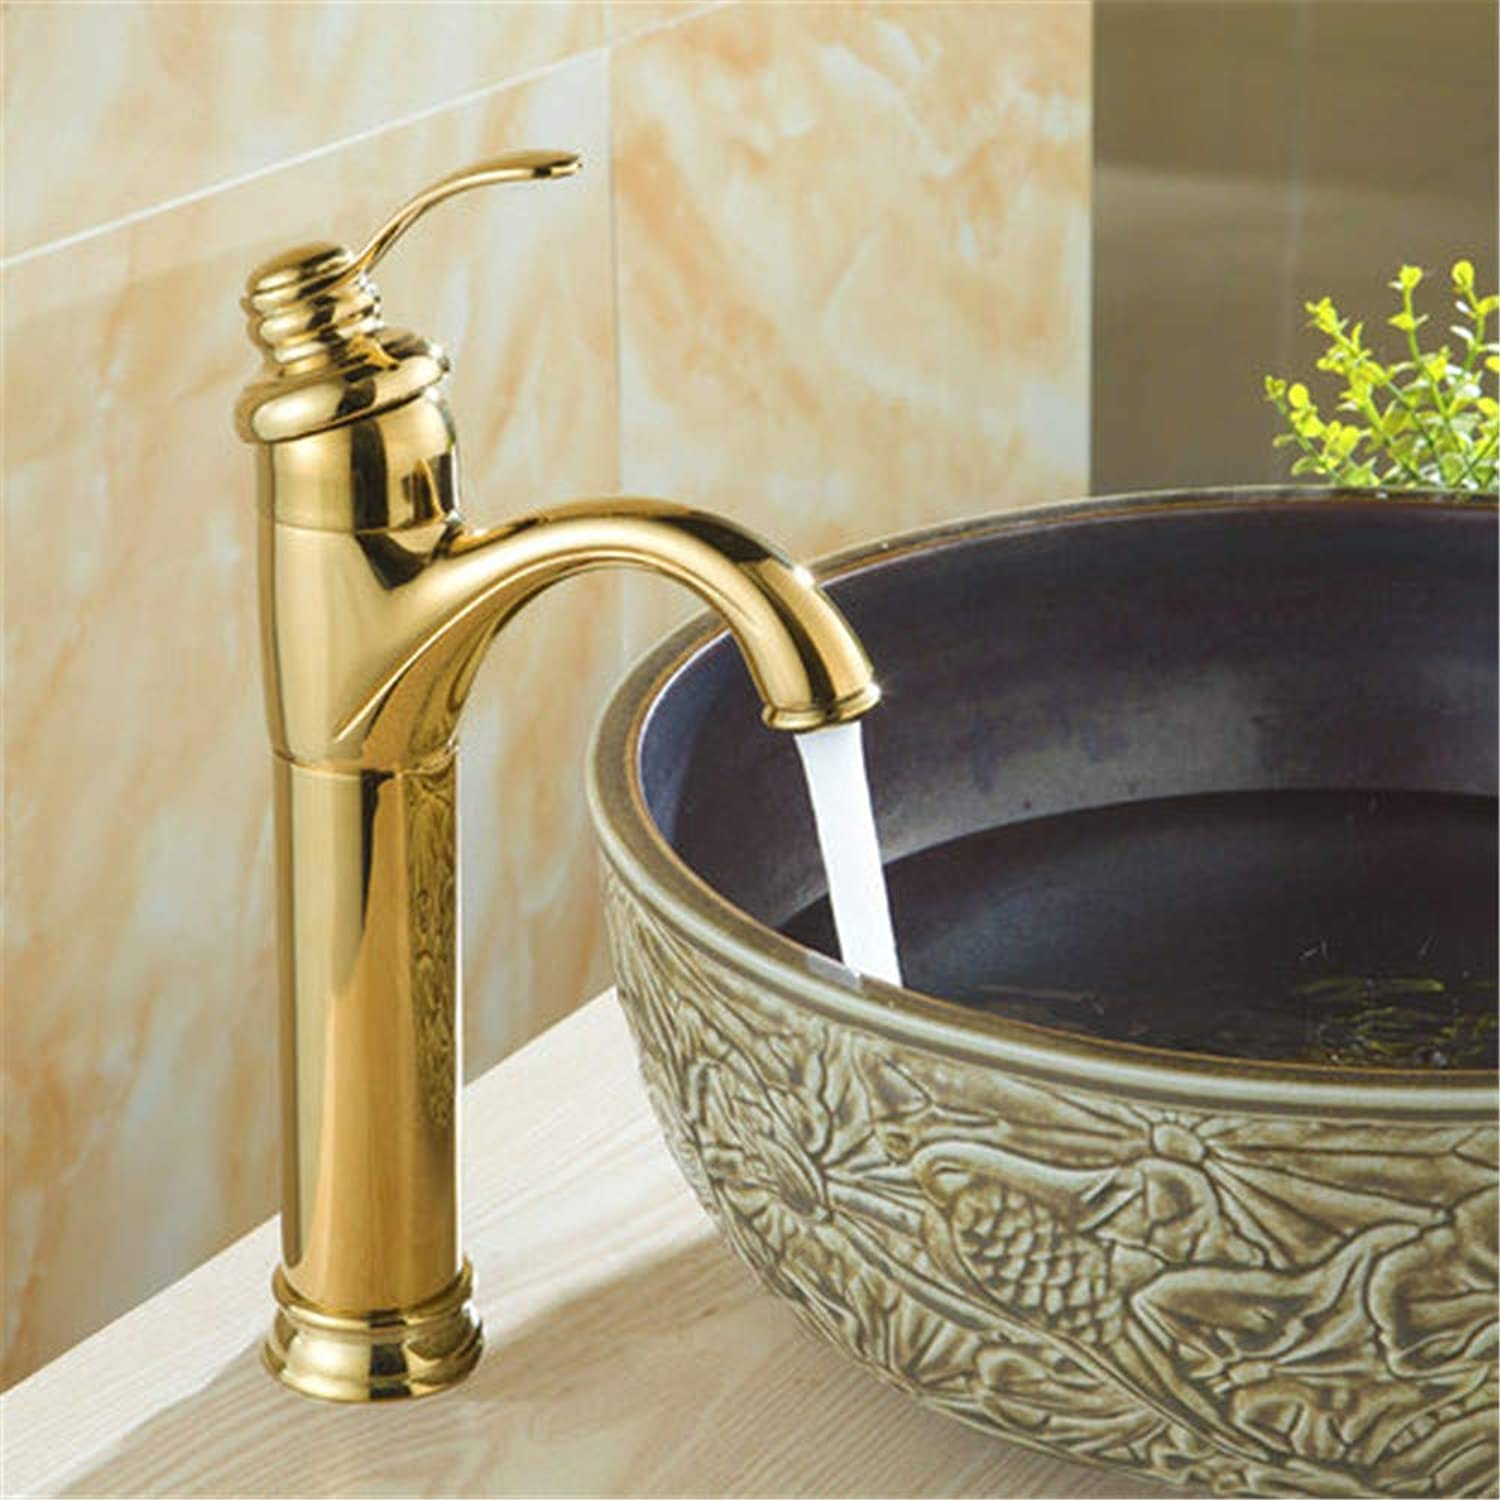 YAWEDA Bathroom Basin Faucet Brass Basin Mixer Tap golden Polished Faucets Single Handle with Aerator Hot and Cold Water Mixer,golden Polish